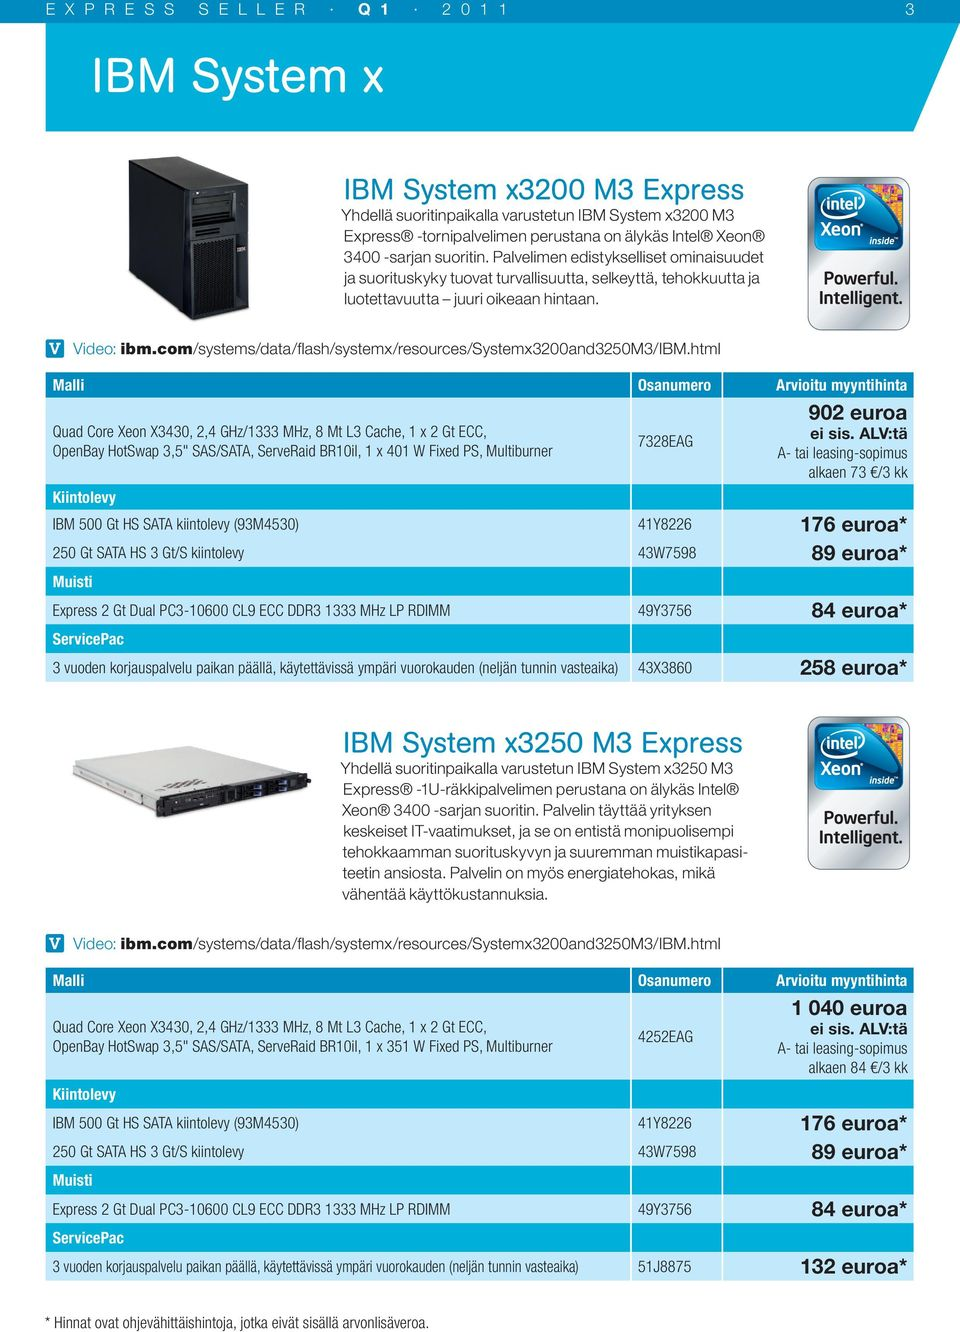 com/systems/data/flash/systemx/resources/systemx3200and3250m3/ibm.